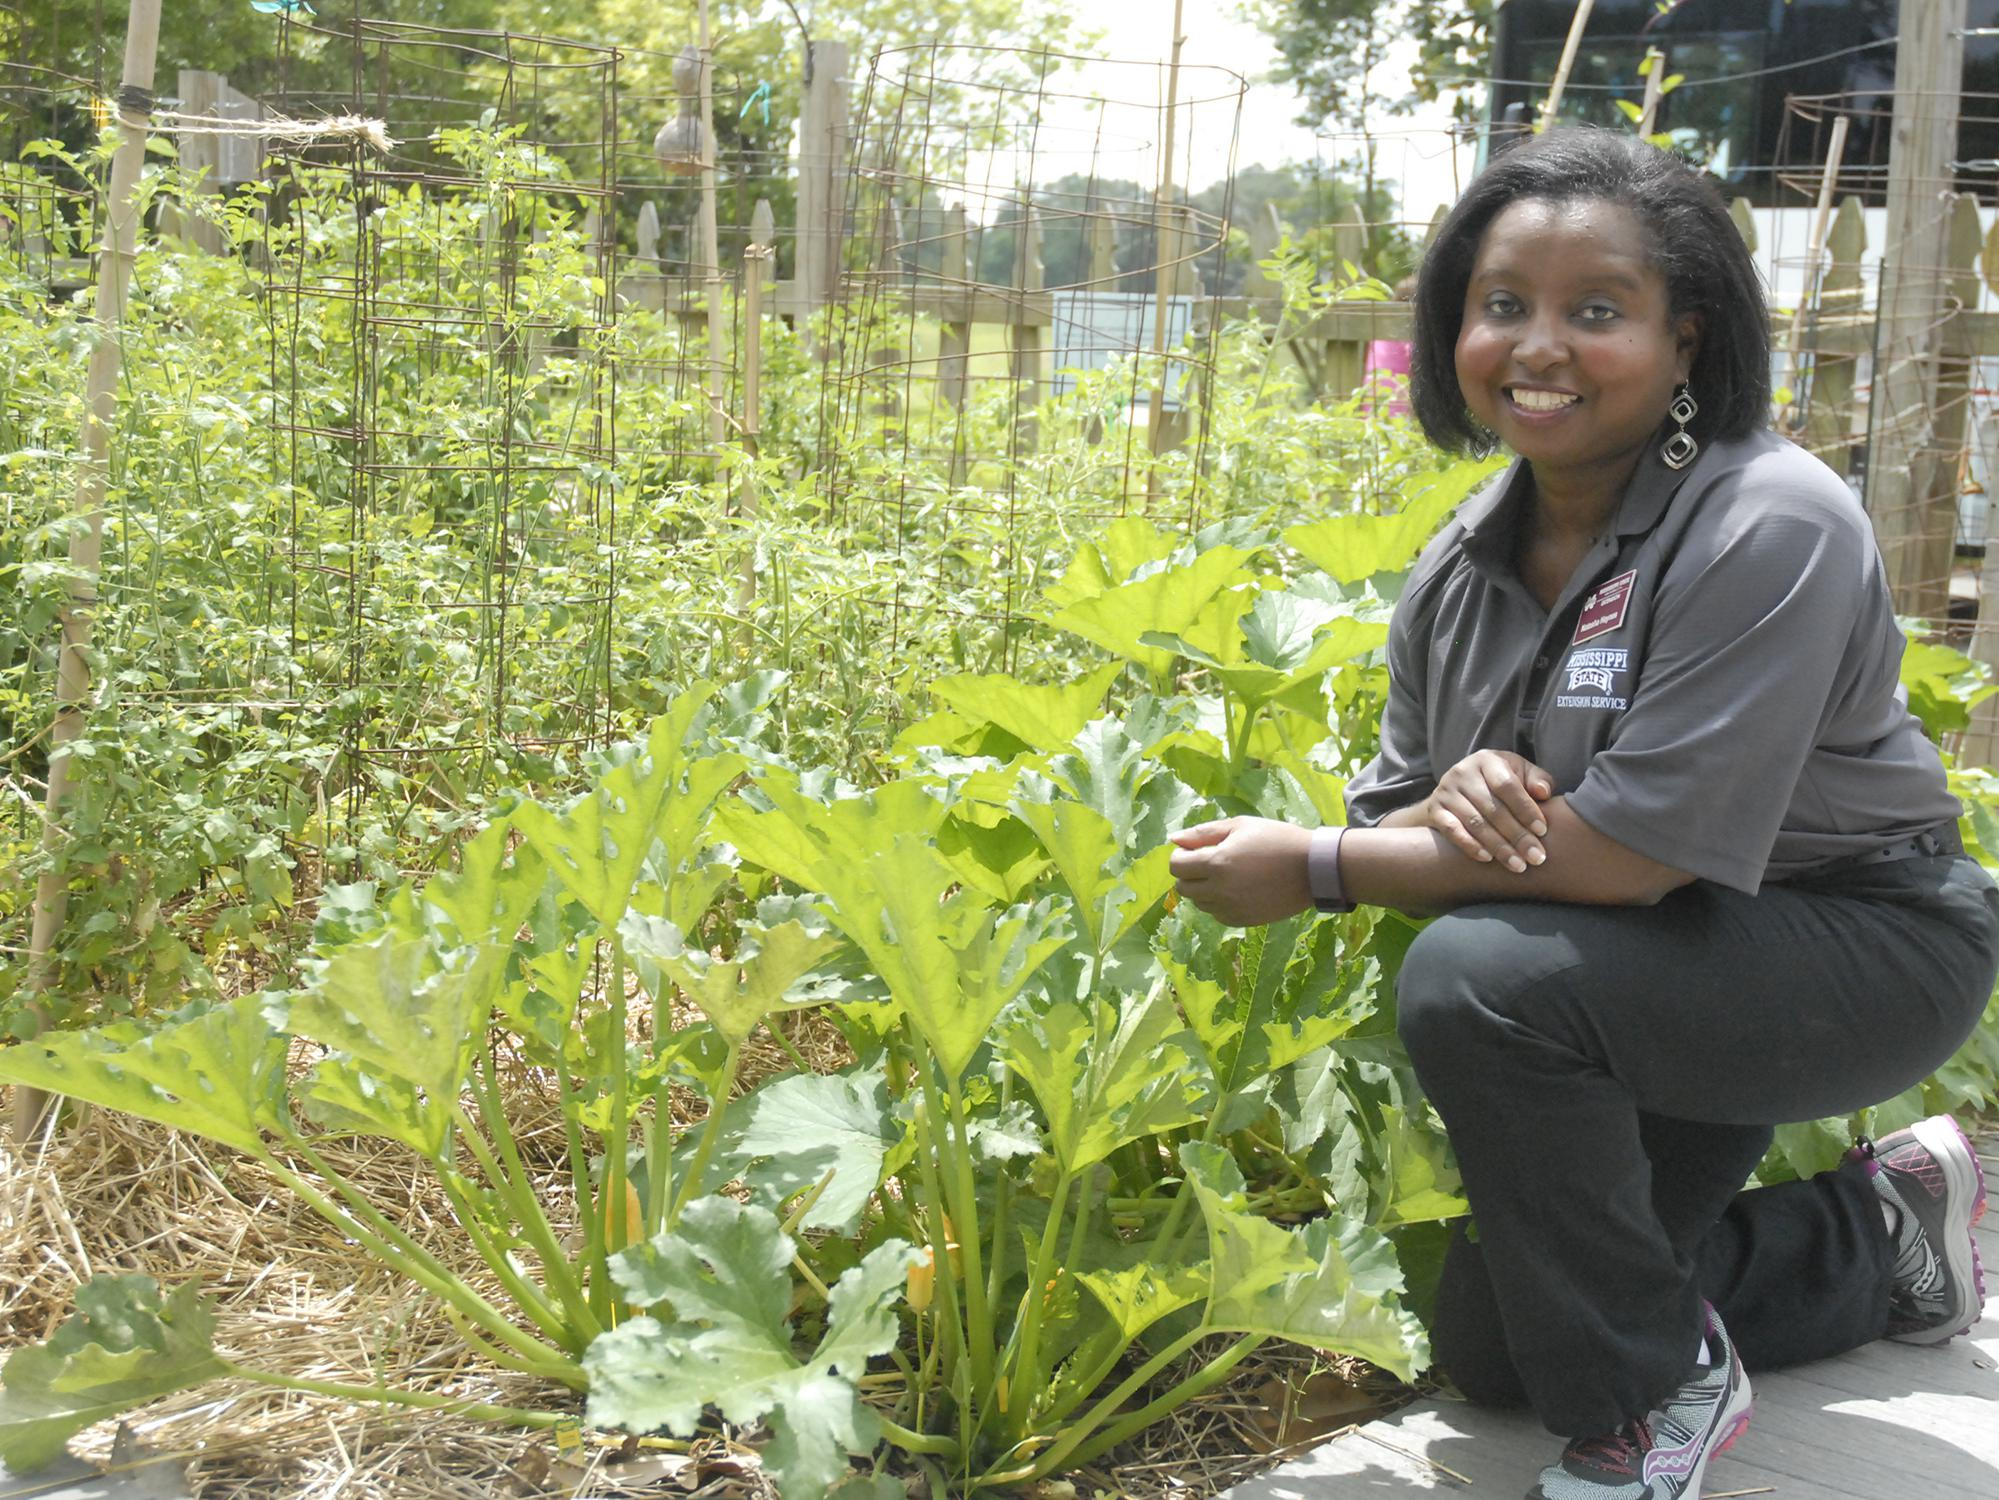 Natasha Haynes, Mississippi State University Extension agent in Rankin County, advocates choosing one local ingredient to spotlight in a menu, such as this squash growing at the Southern Heritage Garden at the Vicksburg National Military Park on June 13, 2017. (Photo by MSU Extension Service/Bonnie Coblentz)